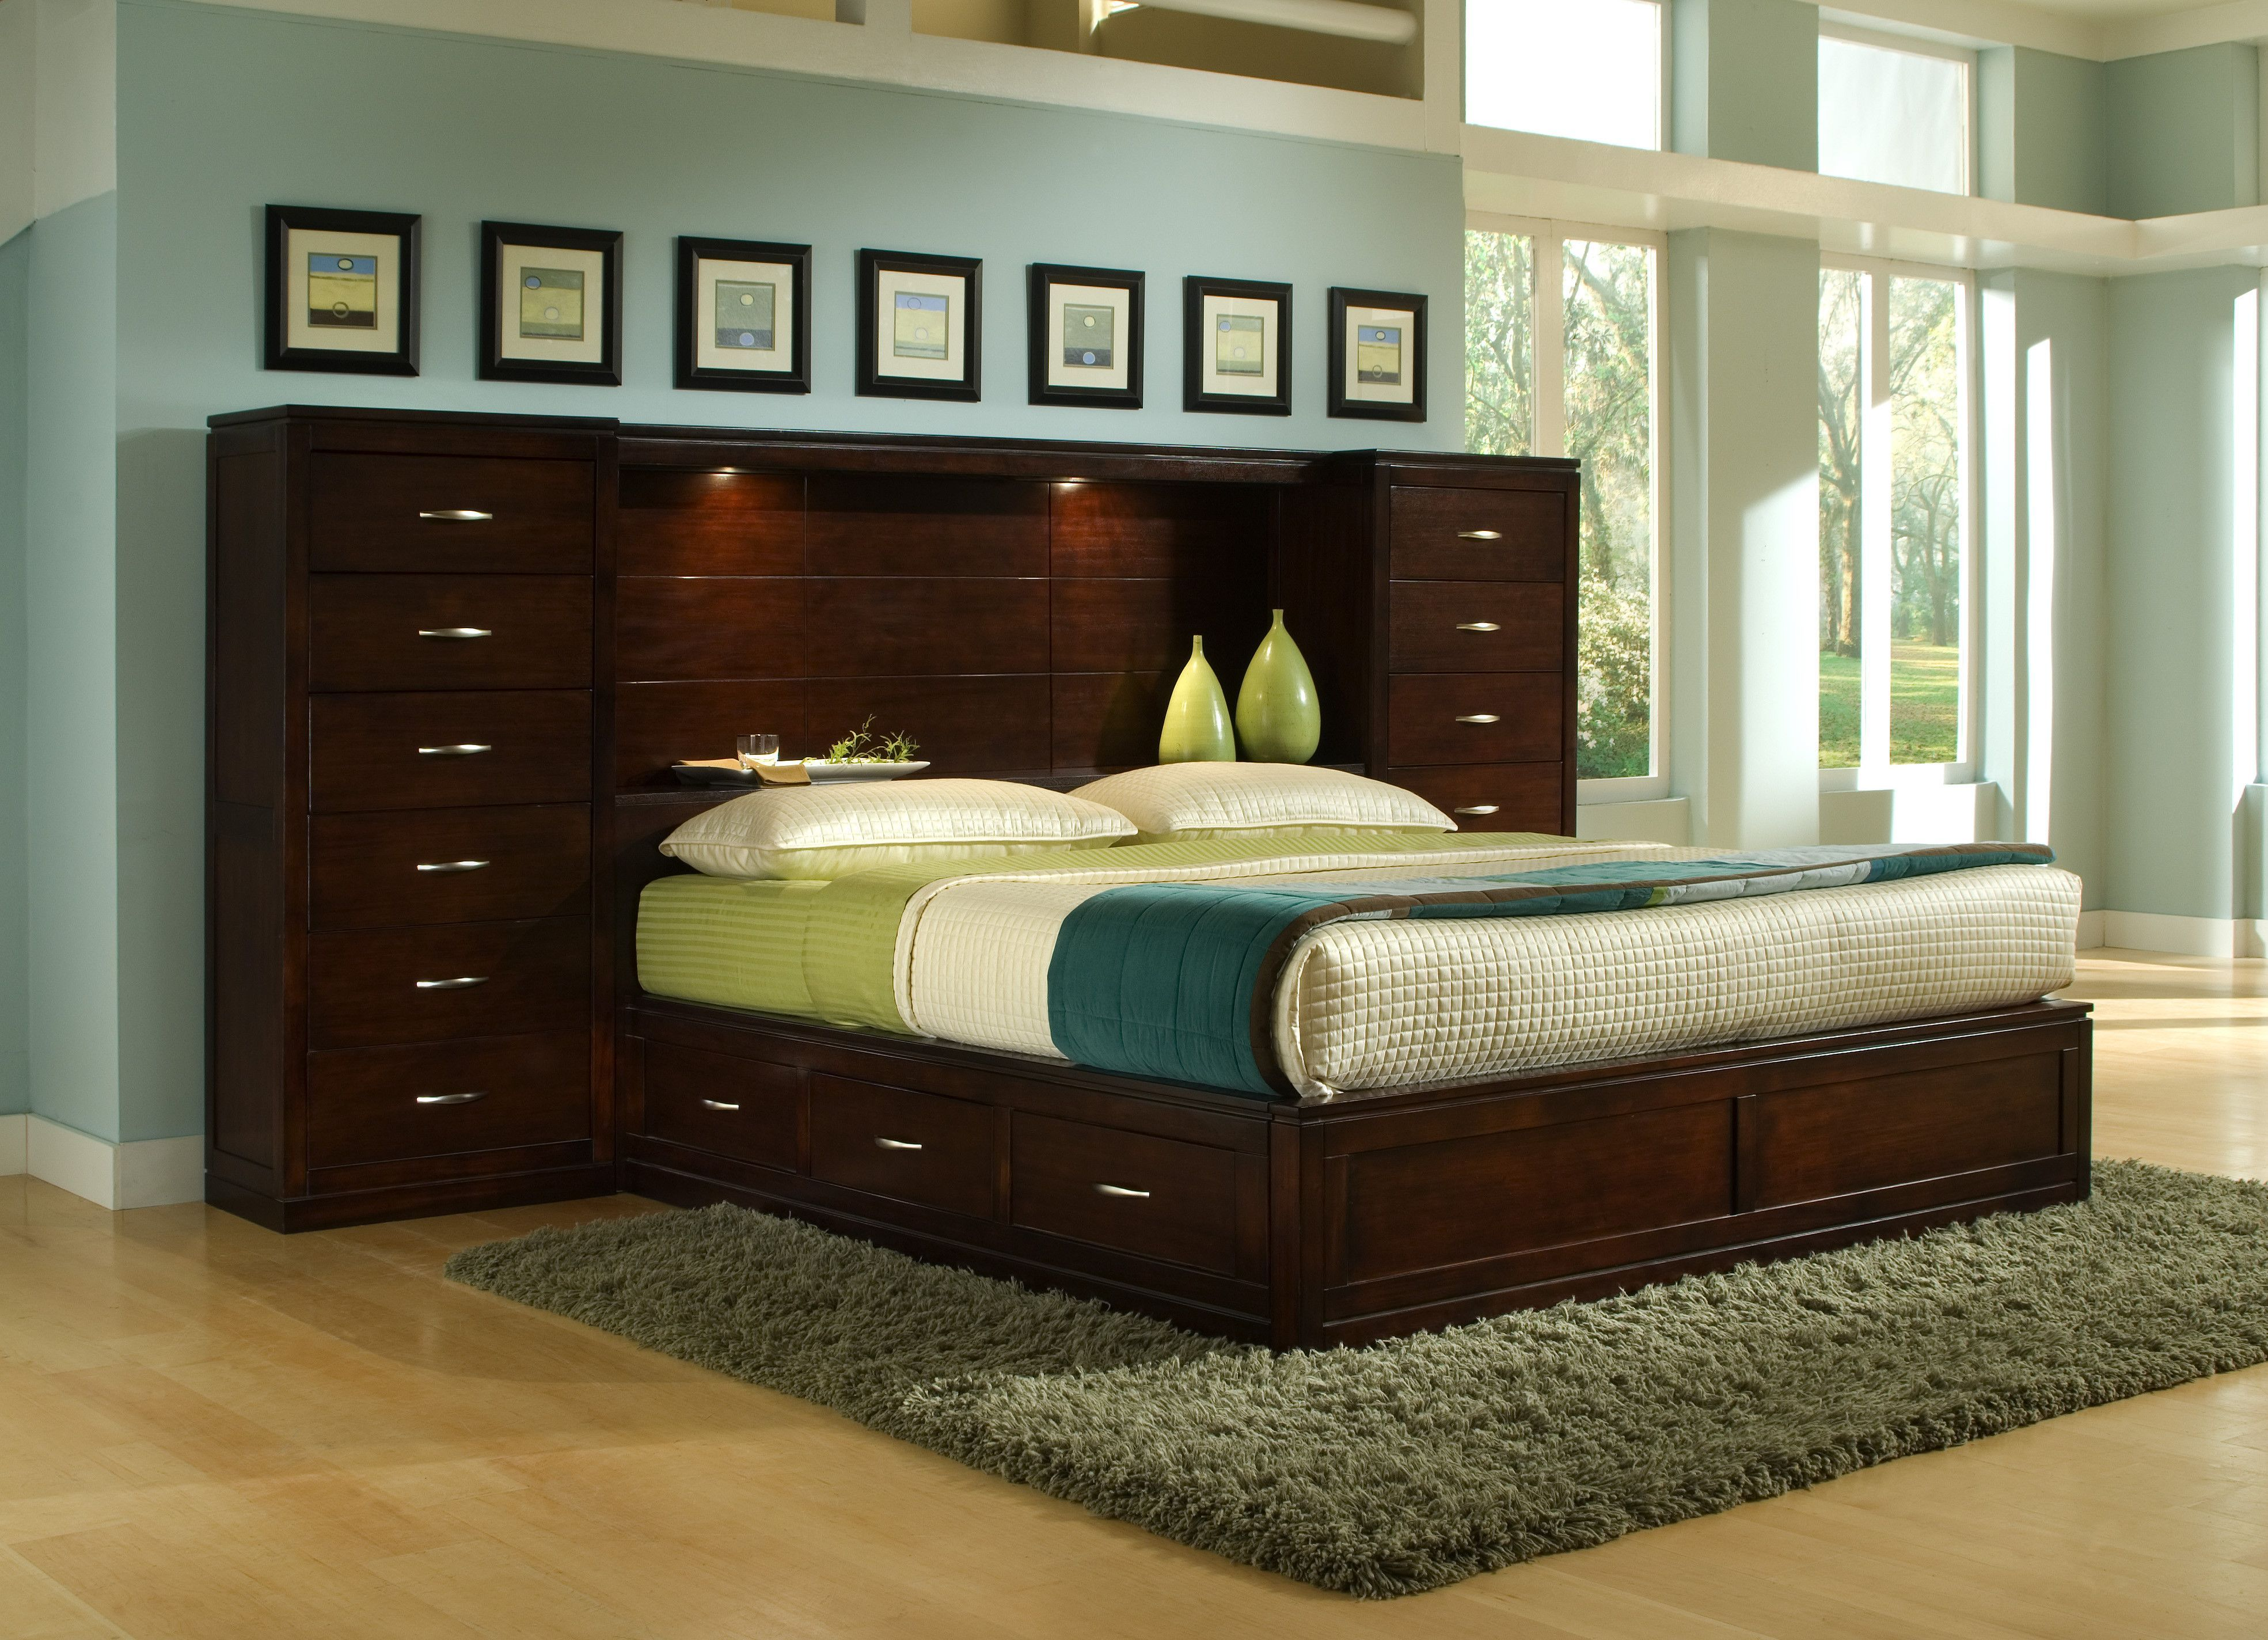 Superior Pier Wall Unit Bedroom Furniture   Nowadays People Not Only Look Out For  Single Pieces Of Bedroom Furniture But Also For Enti